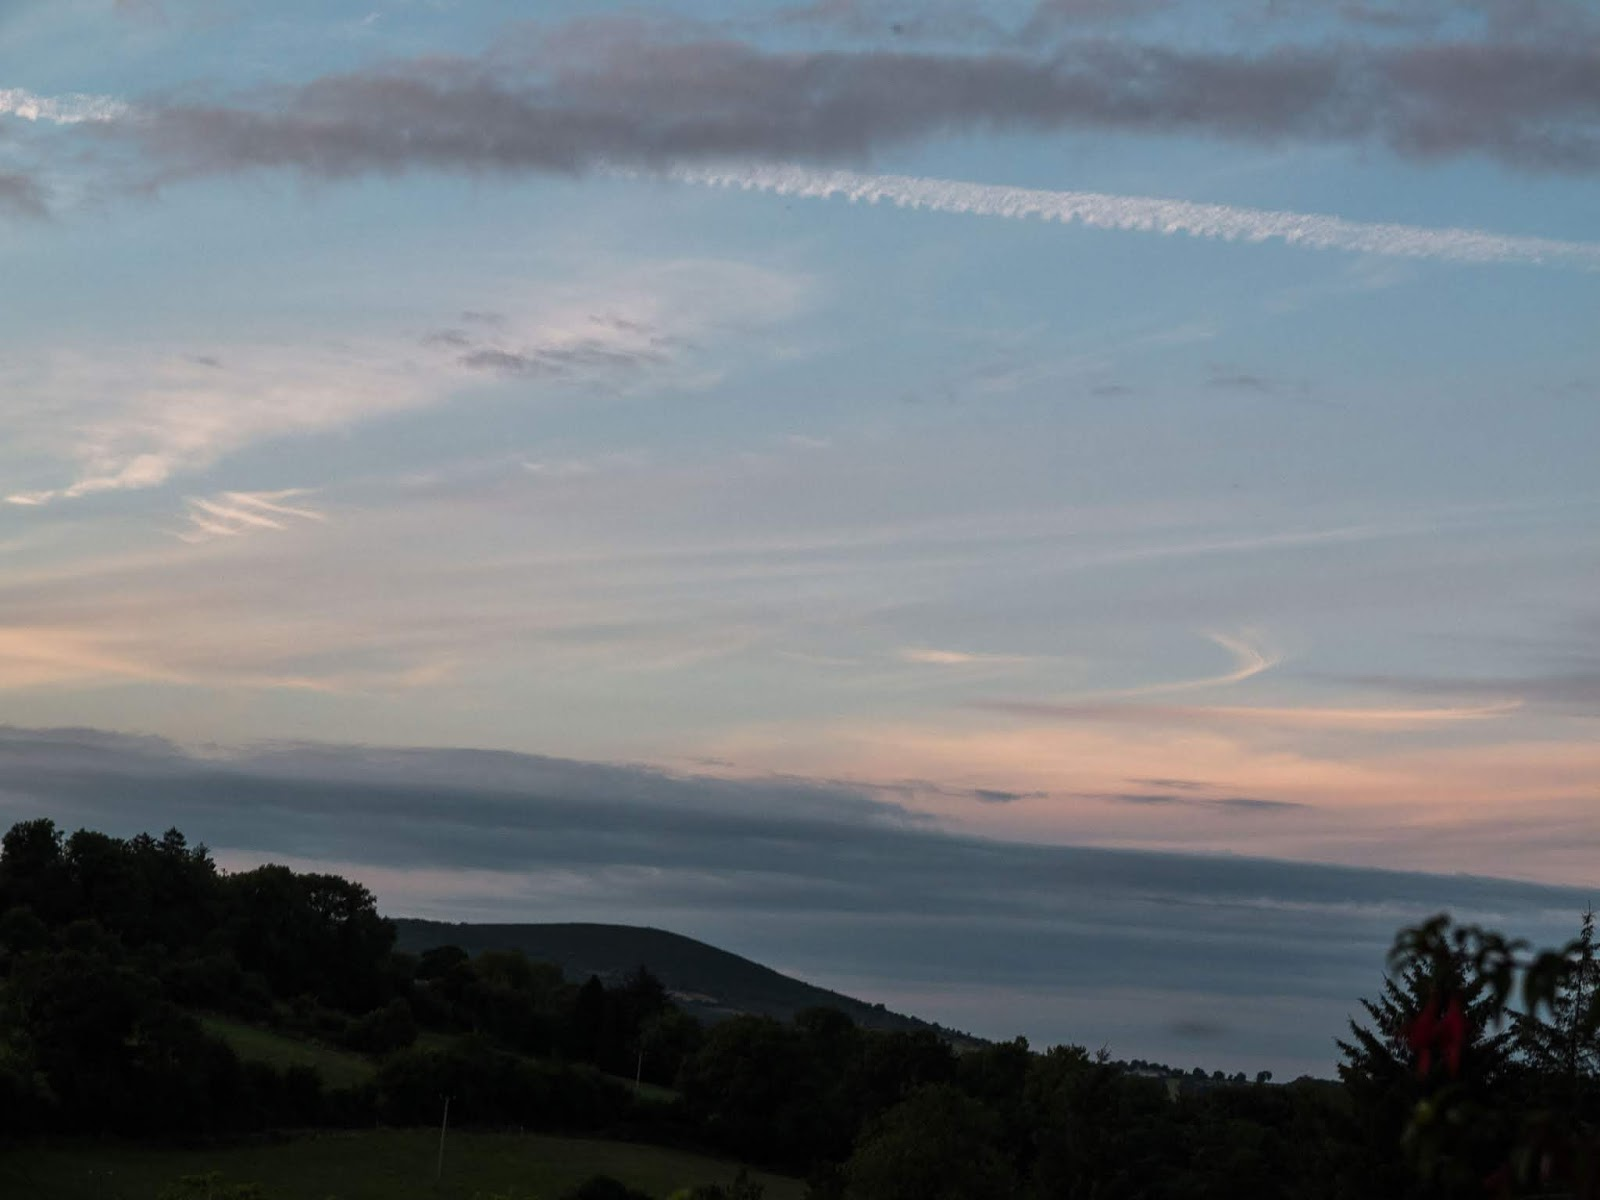 Light blue pastel sunset sky with scattered clouds over a hillside in North County Cork.